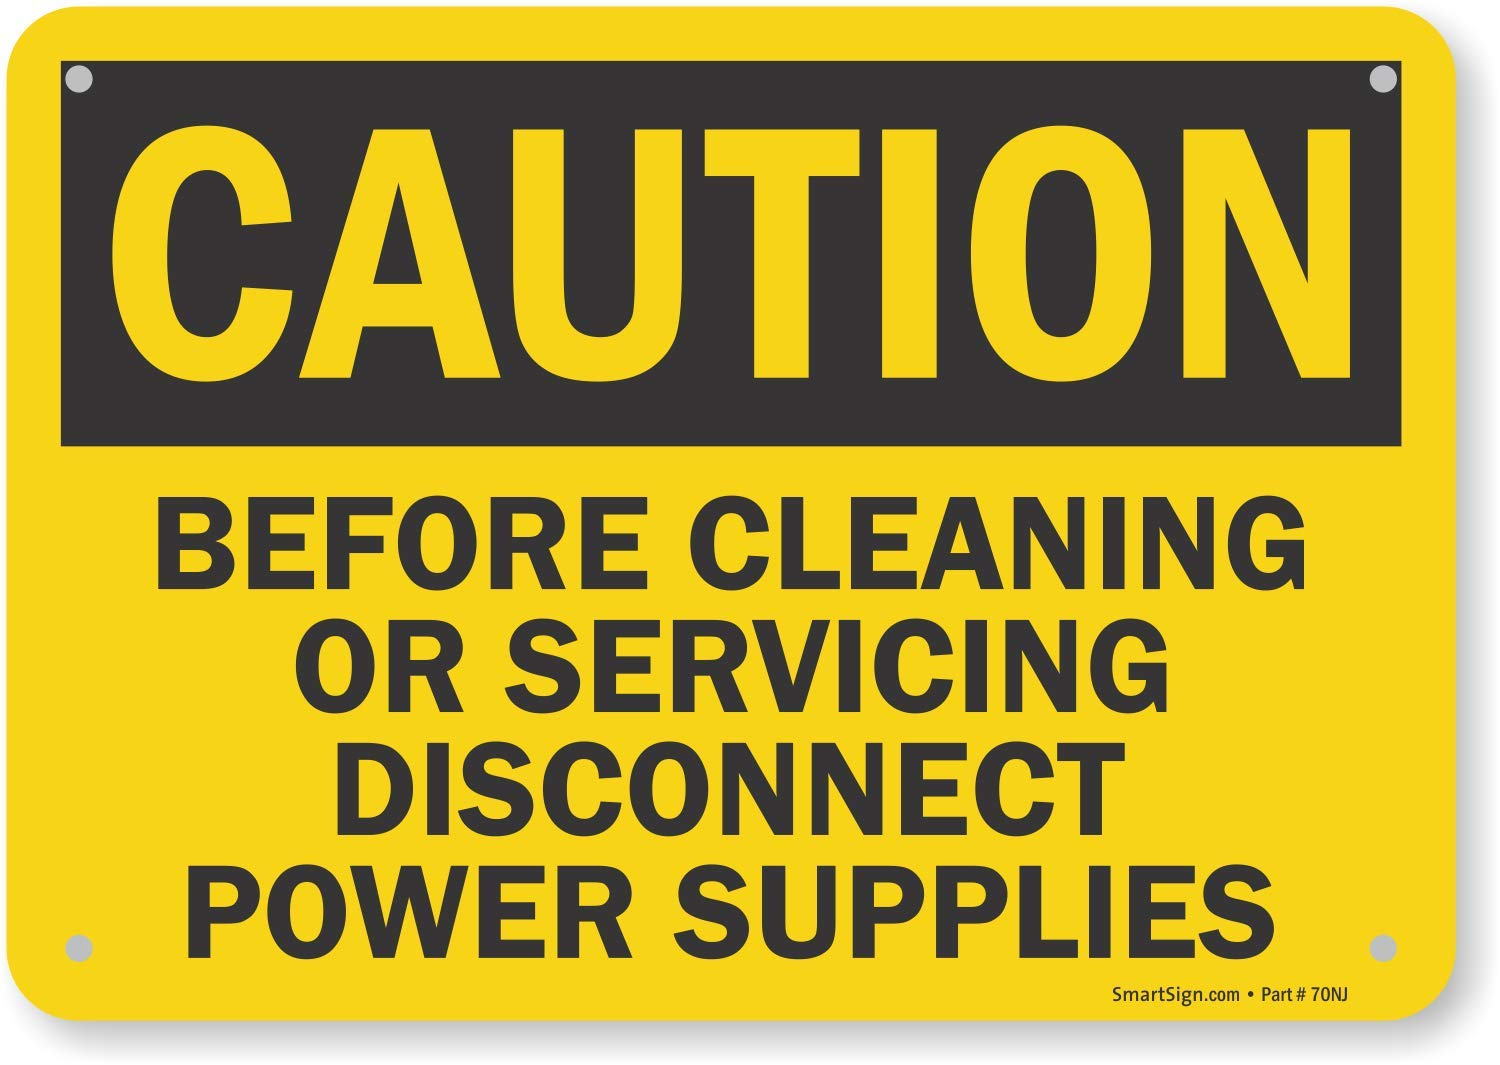 """SmartSign """"Caution - Before Cleaning Or Servicing Disconnect Power Supplies"""" Sign 